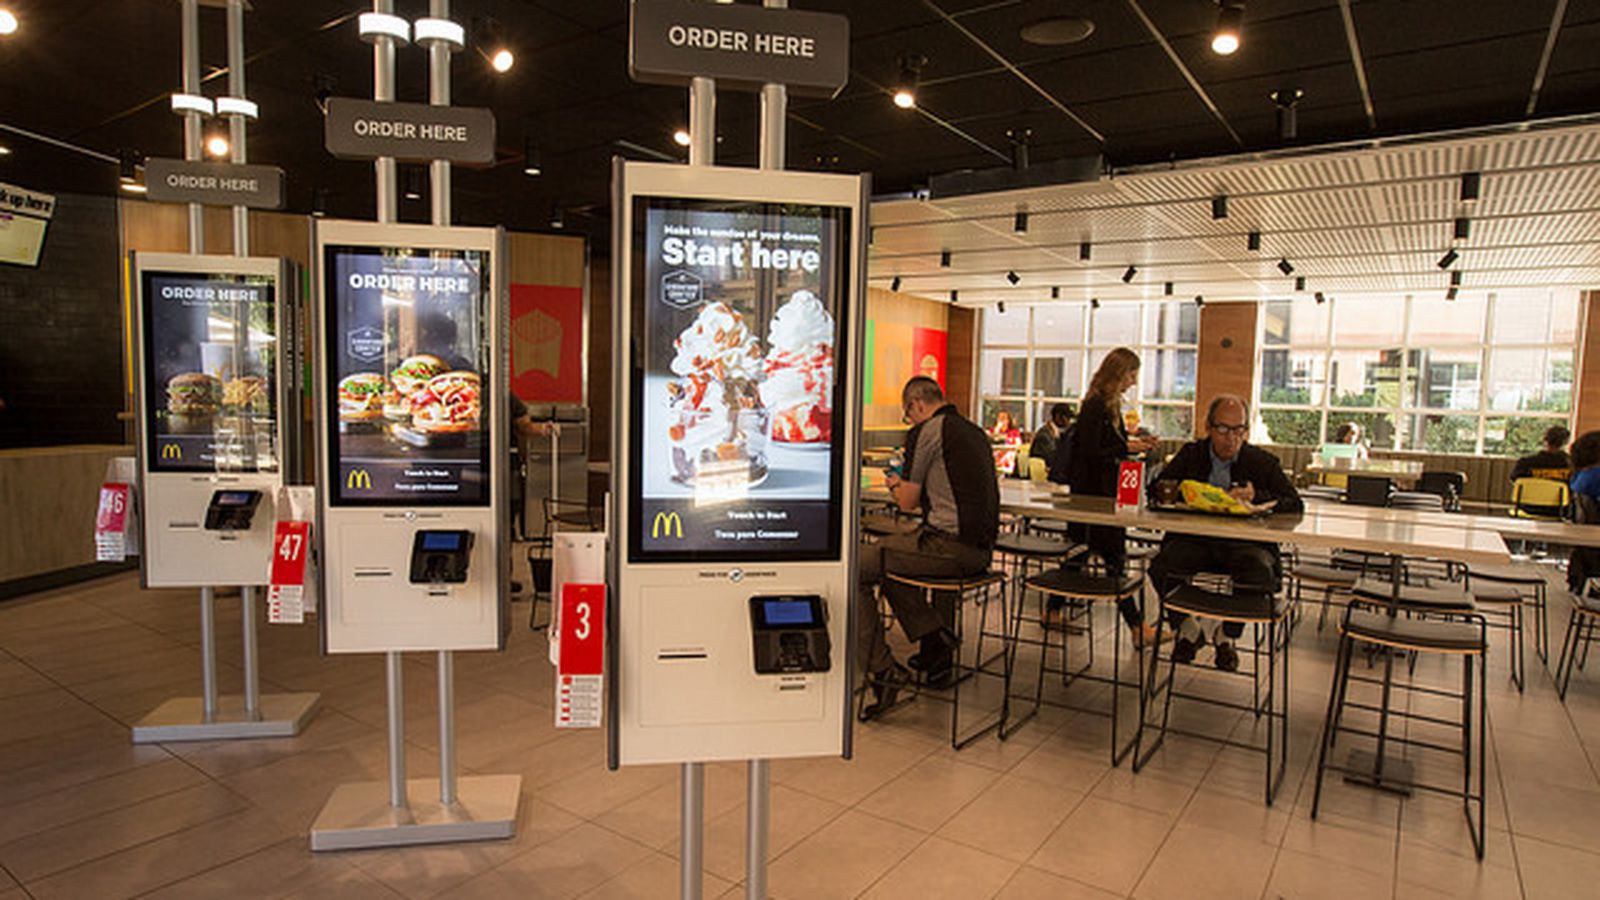 The McDonalds Of The Future Has Table Service And Touch Screen Ordering Eater